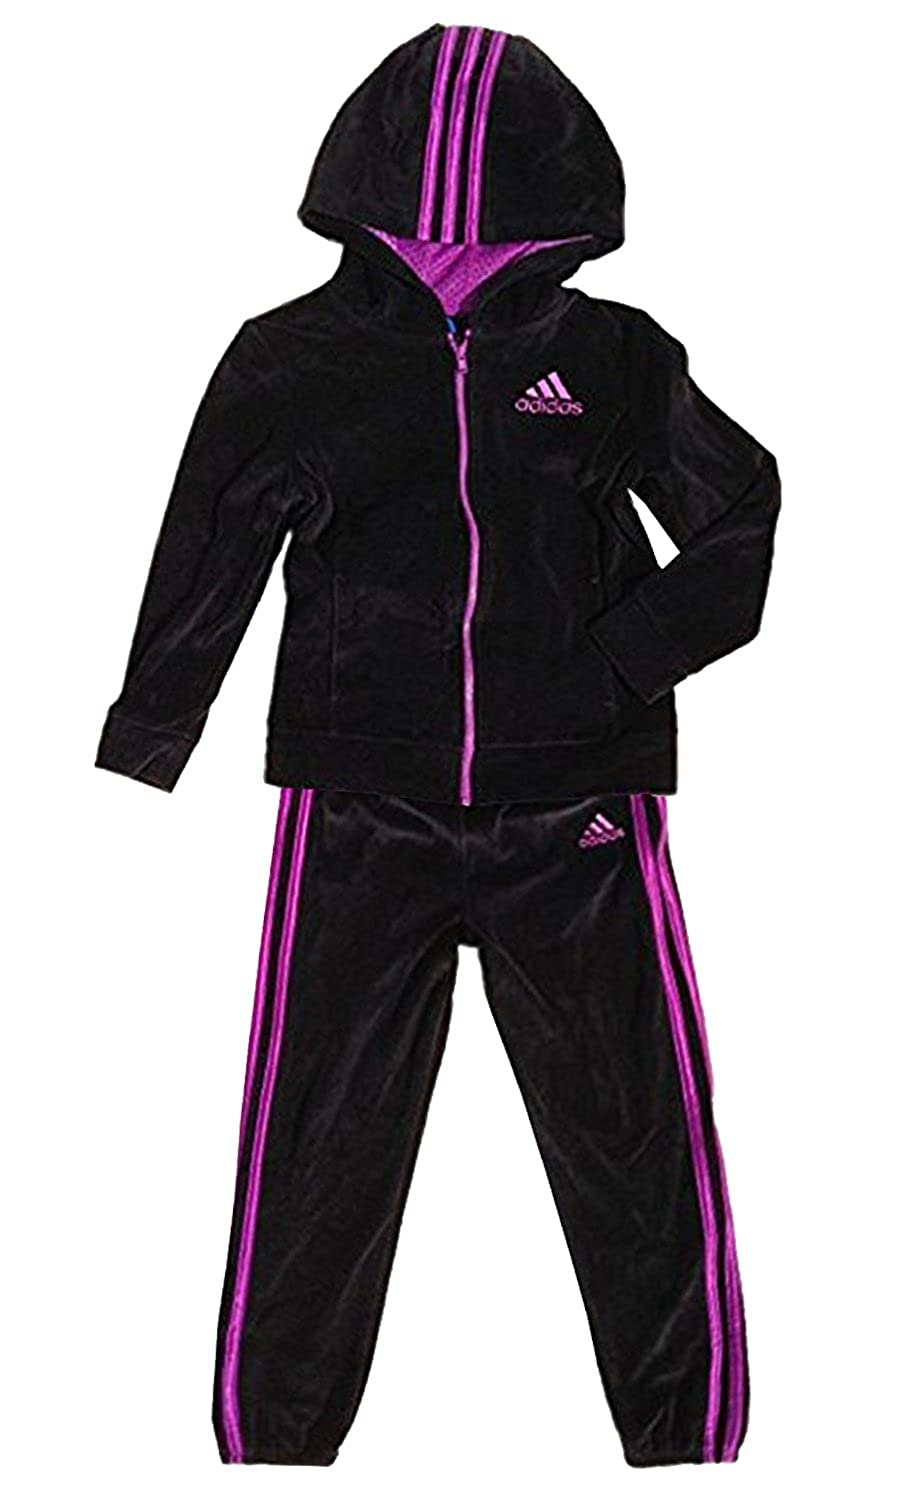 f7ba7da5f81 2 piece set hooded jacket and pants. Space dye styling of fabric. Pink  Adidas brand logo on left chest and left front hip. Full zipper jacket  closure with 2 ...